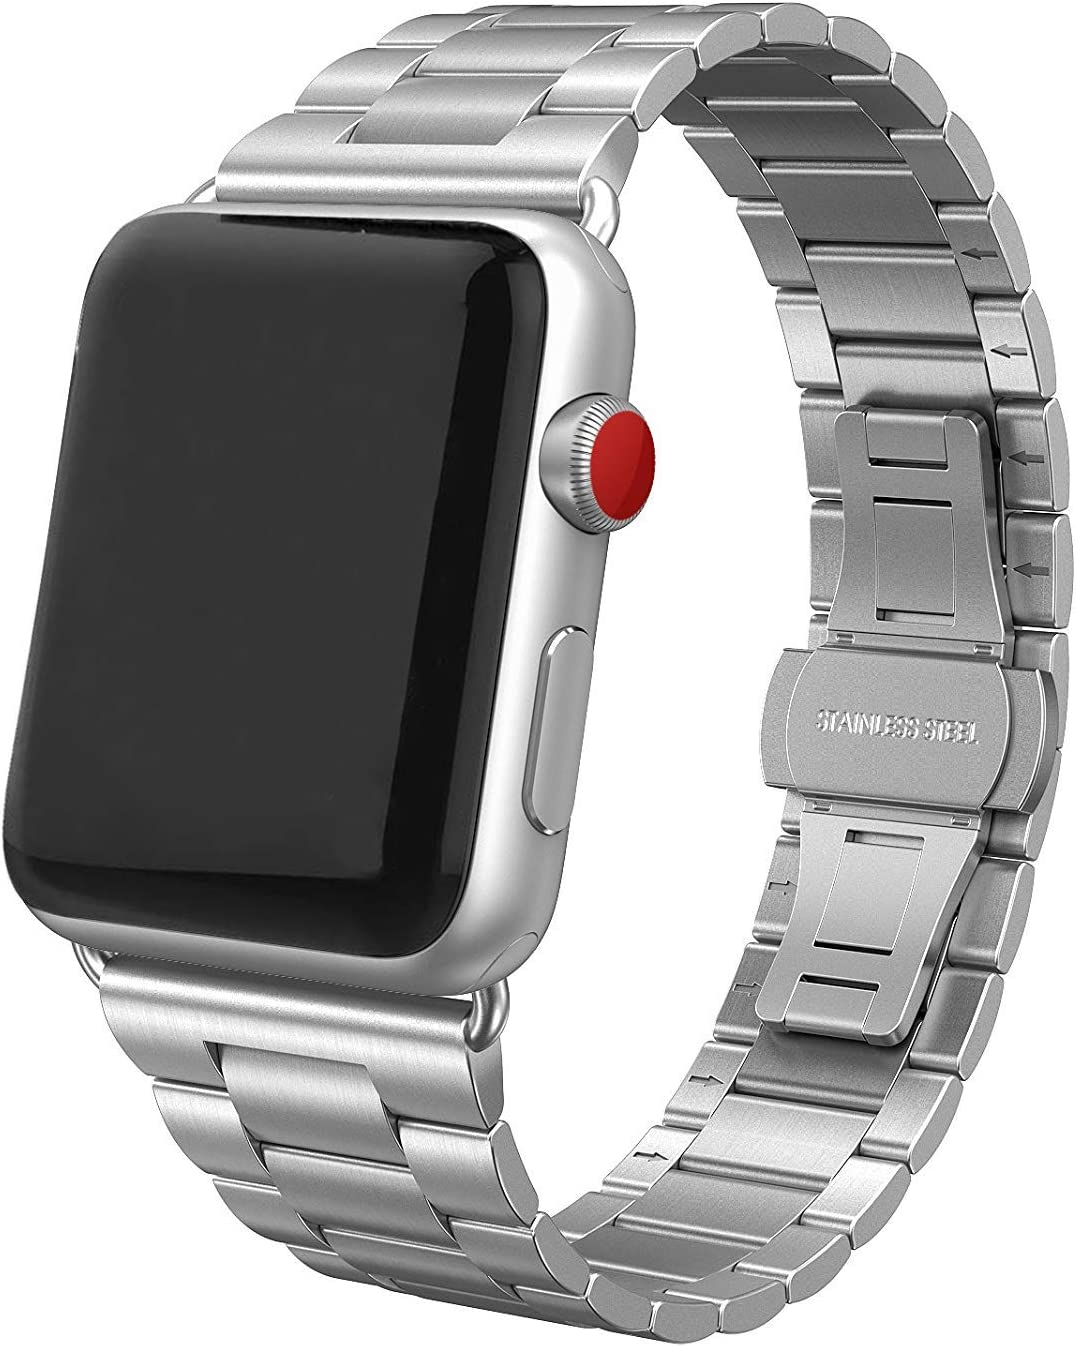 SWEES Stainless Steel Metal Bands Compatible with iWatch 42mm 44mm Series 6 Series 5 Series 4, Series 3, Series 2, Series 1 SE Sports & Edition, Replacement Ultra Thin Slim Link with Metal Clasp, Silver